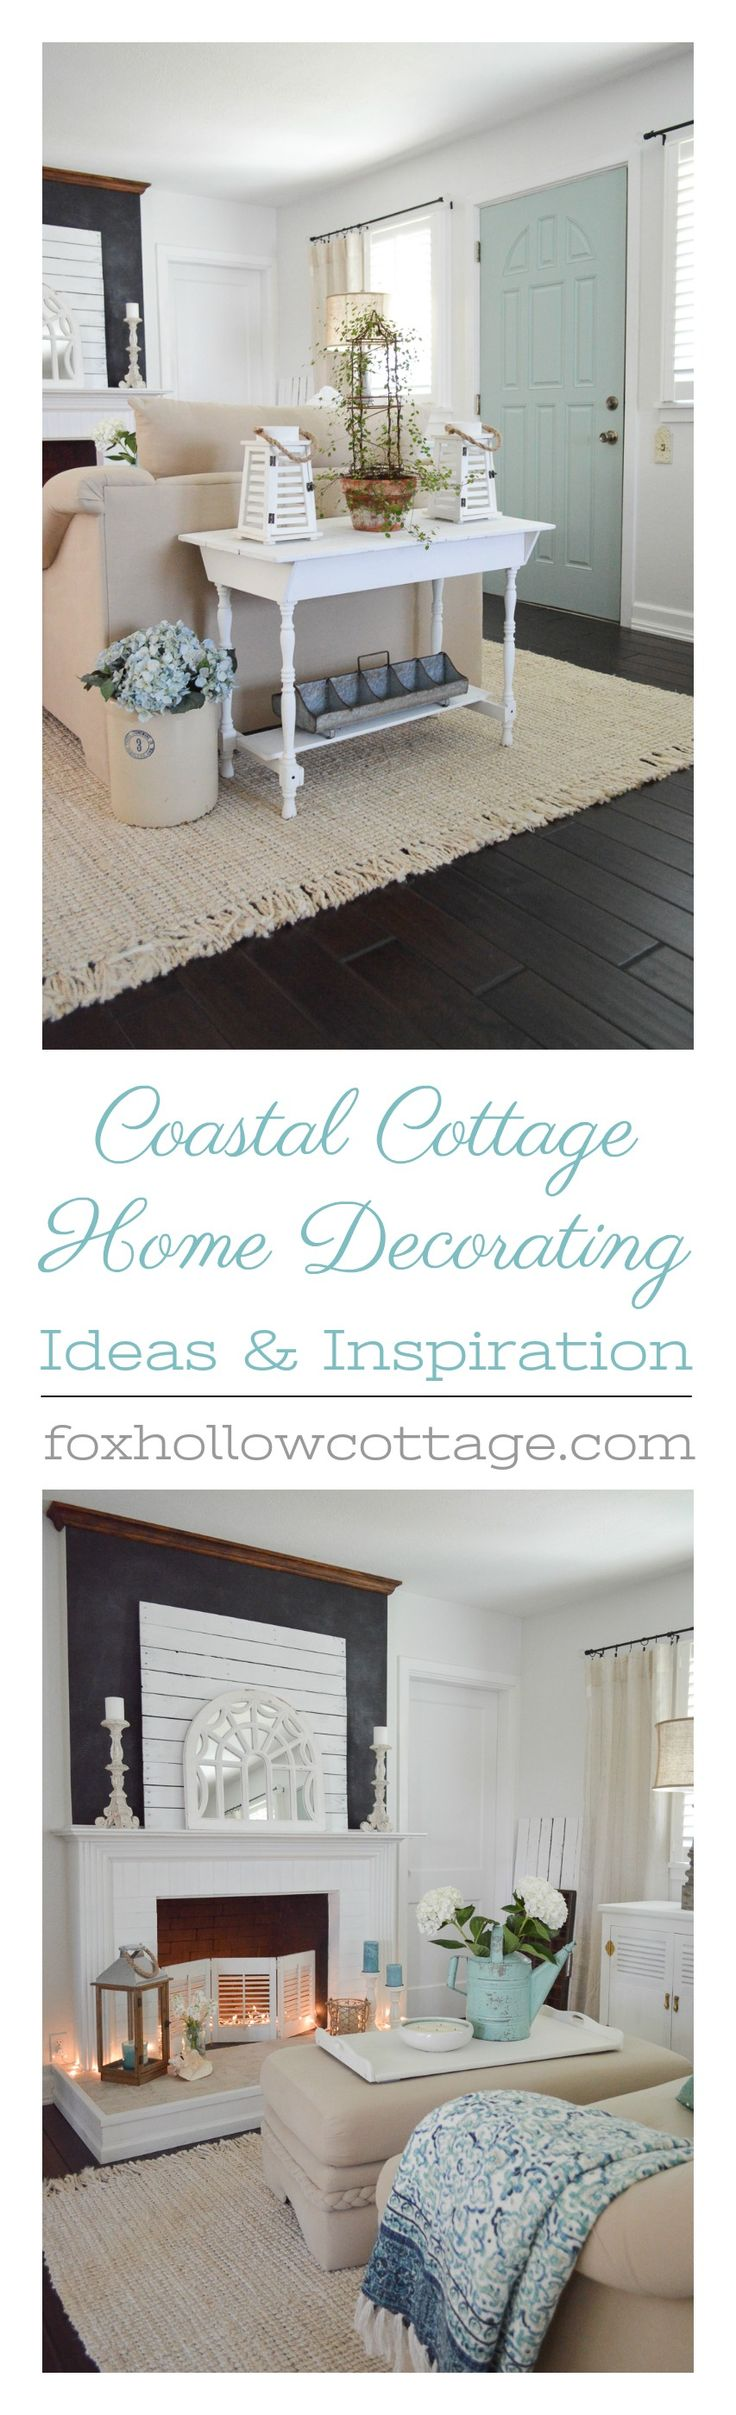 Home Decorating Ideas With Coastal, Cottage Farmhouse Style And Vintage  Touches Www.foxhollowcottage